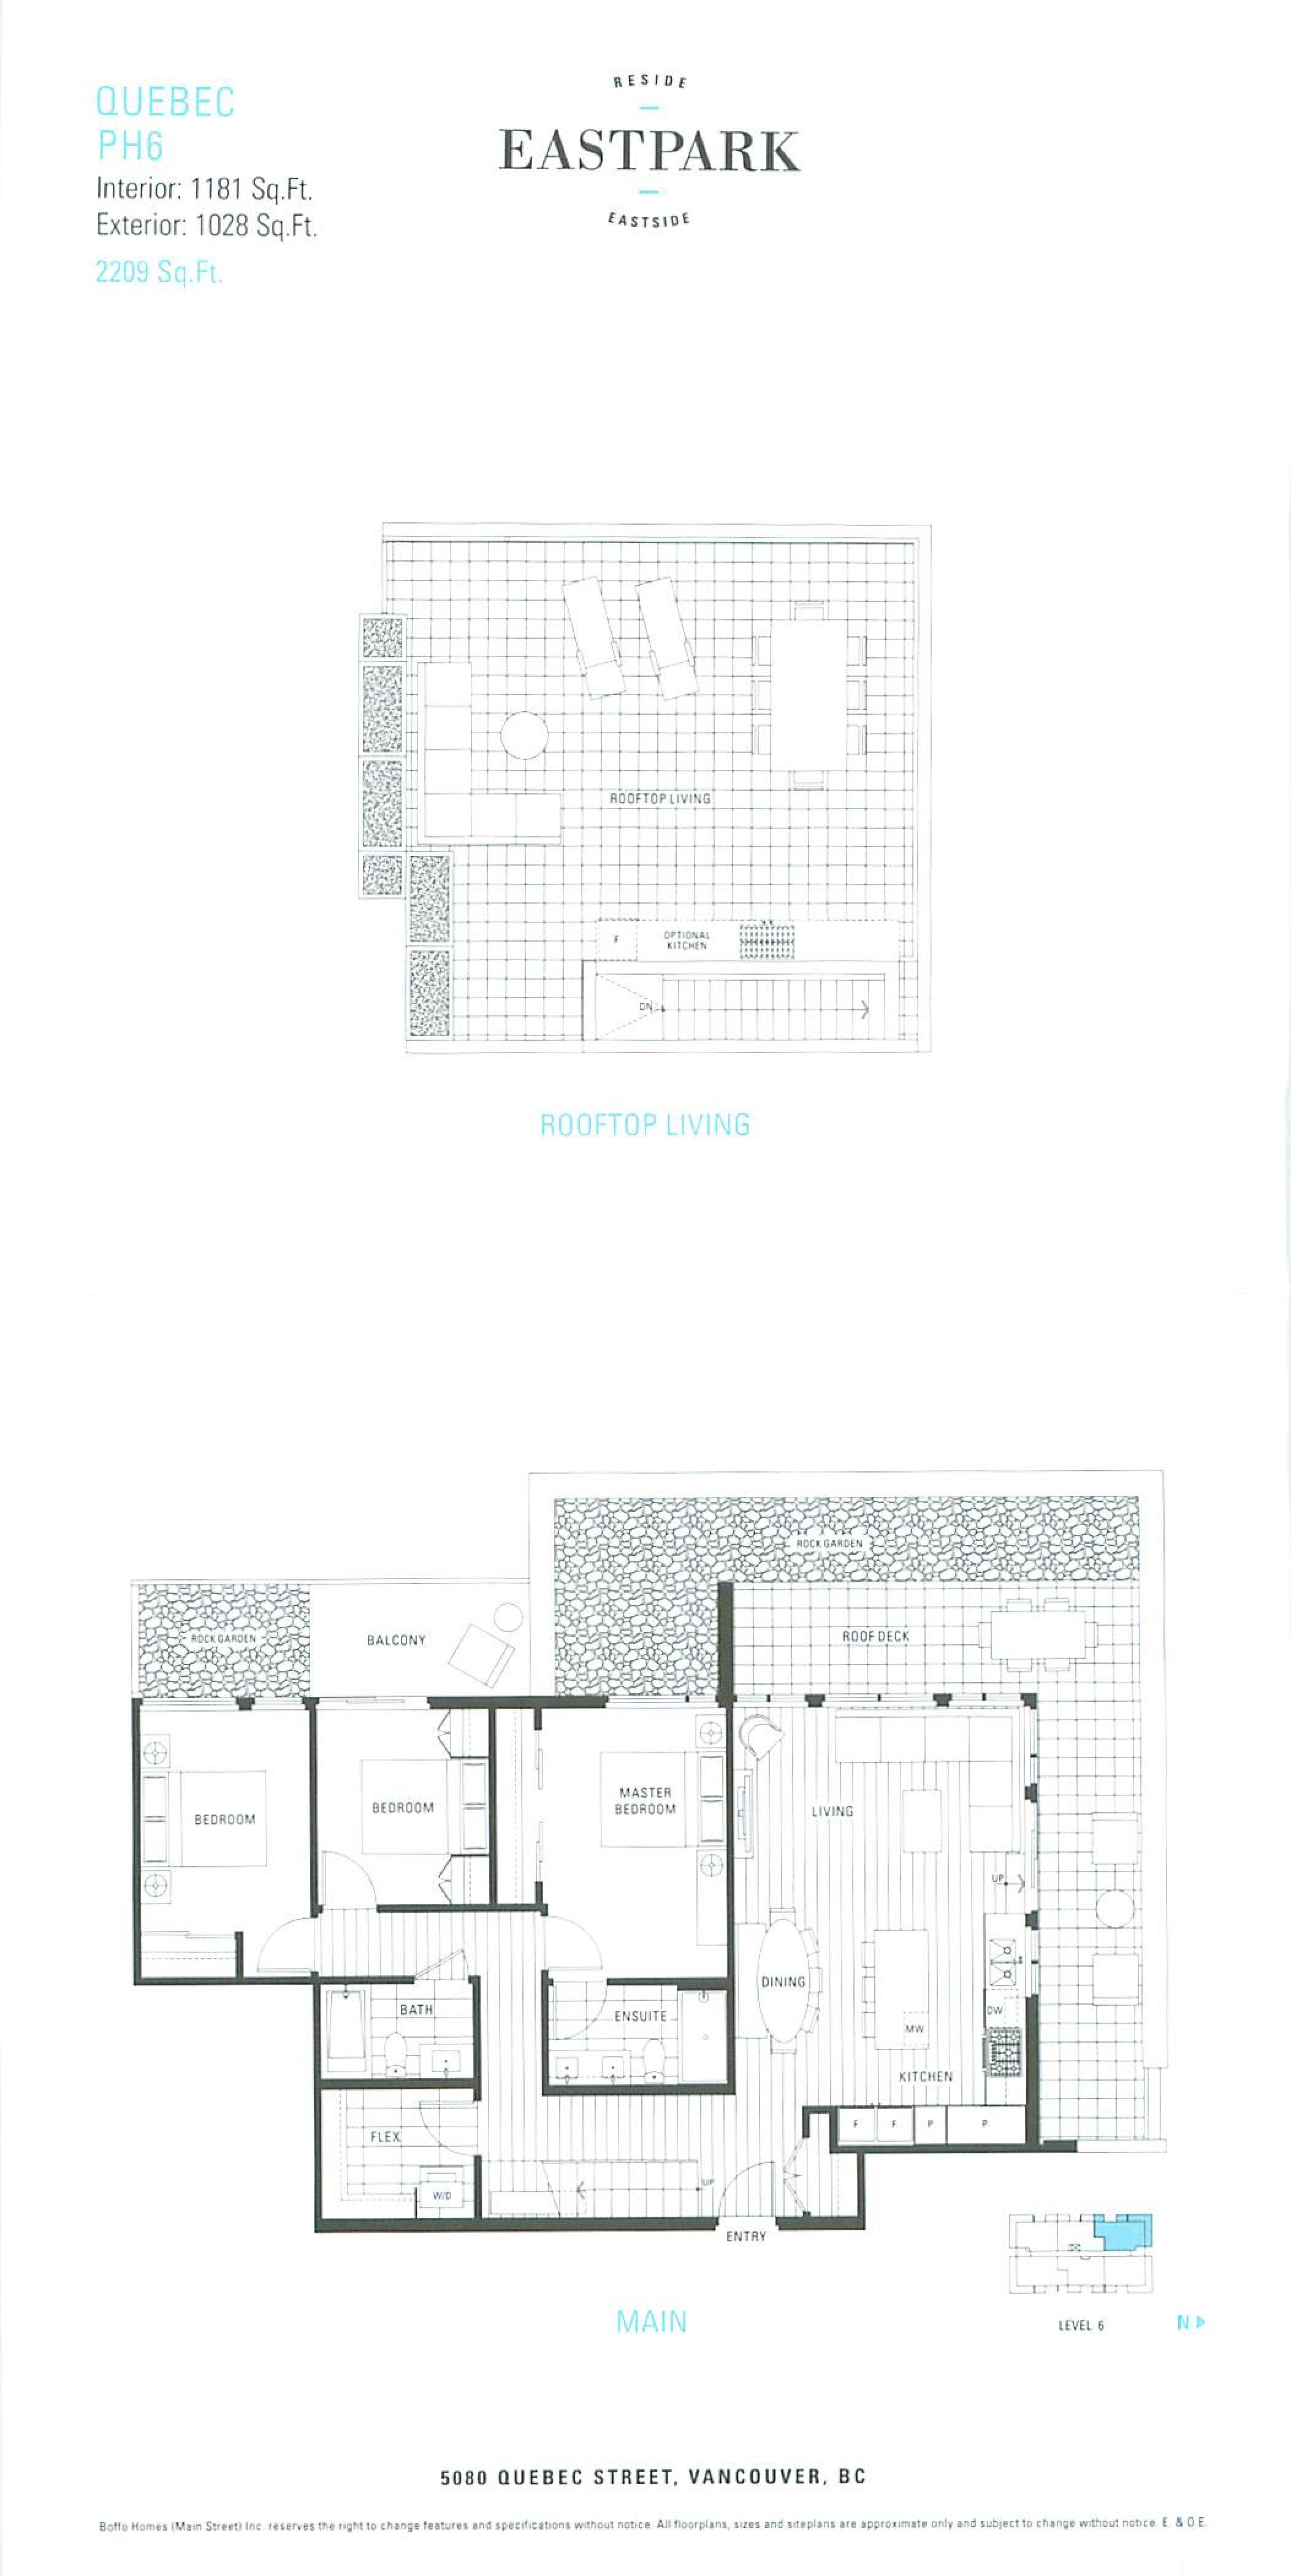 EastPark Quebec Larger Floor Plans Mike Stewart-page-005